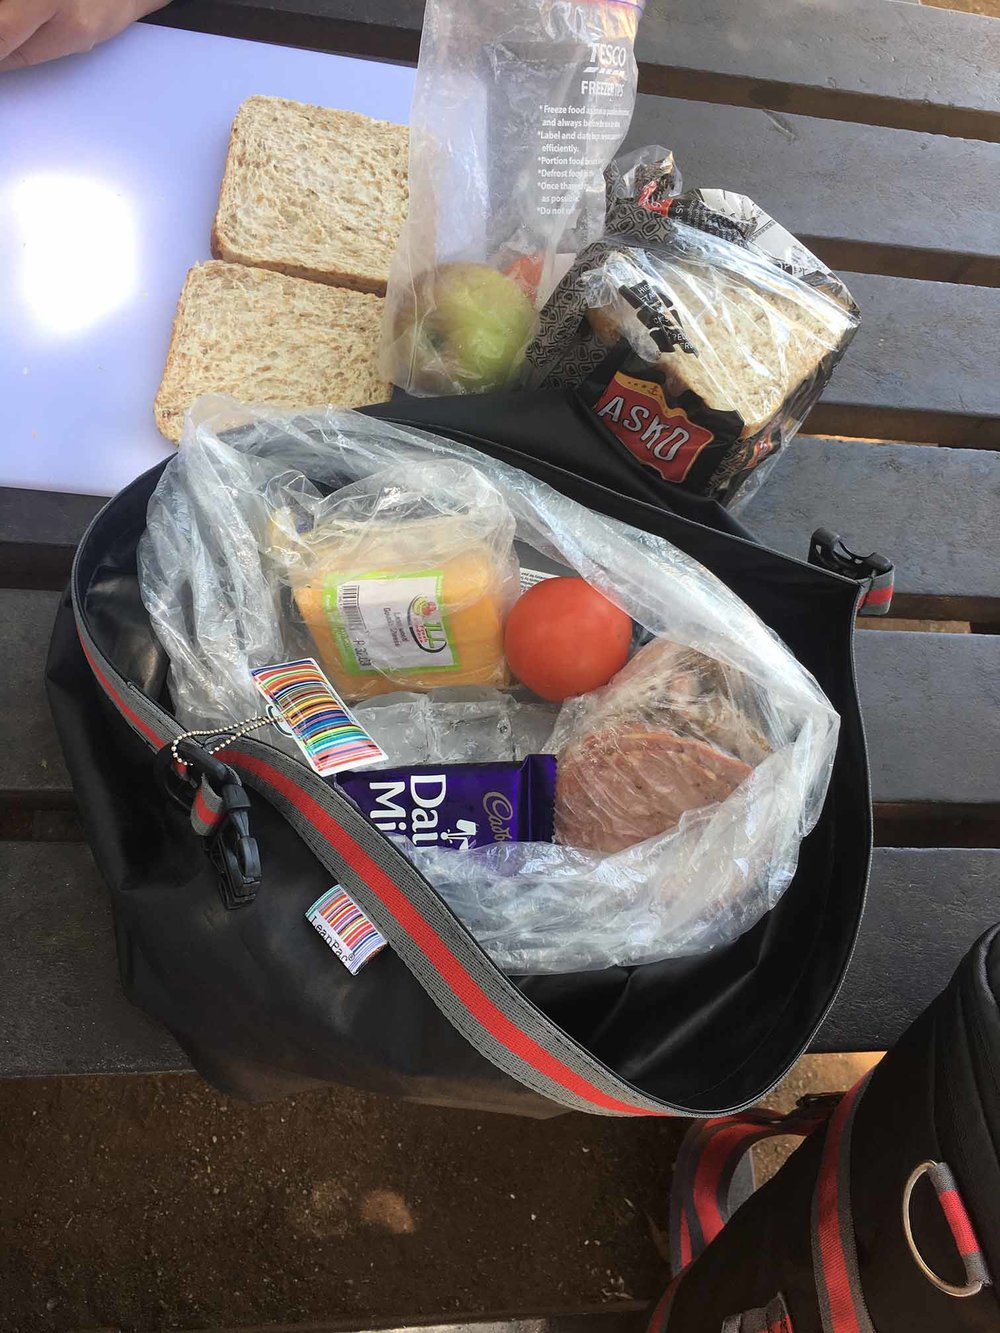 Not just any dry bag! For wet or dry use, for fun or for food! Pack a VacPac for a picnic! Get yours now!